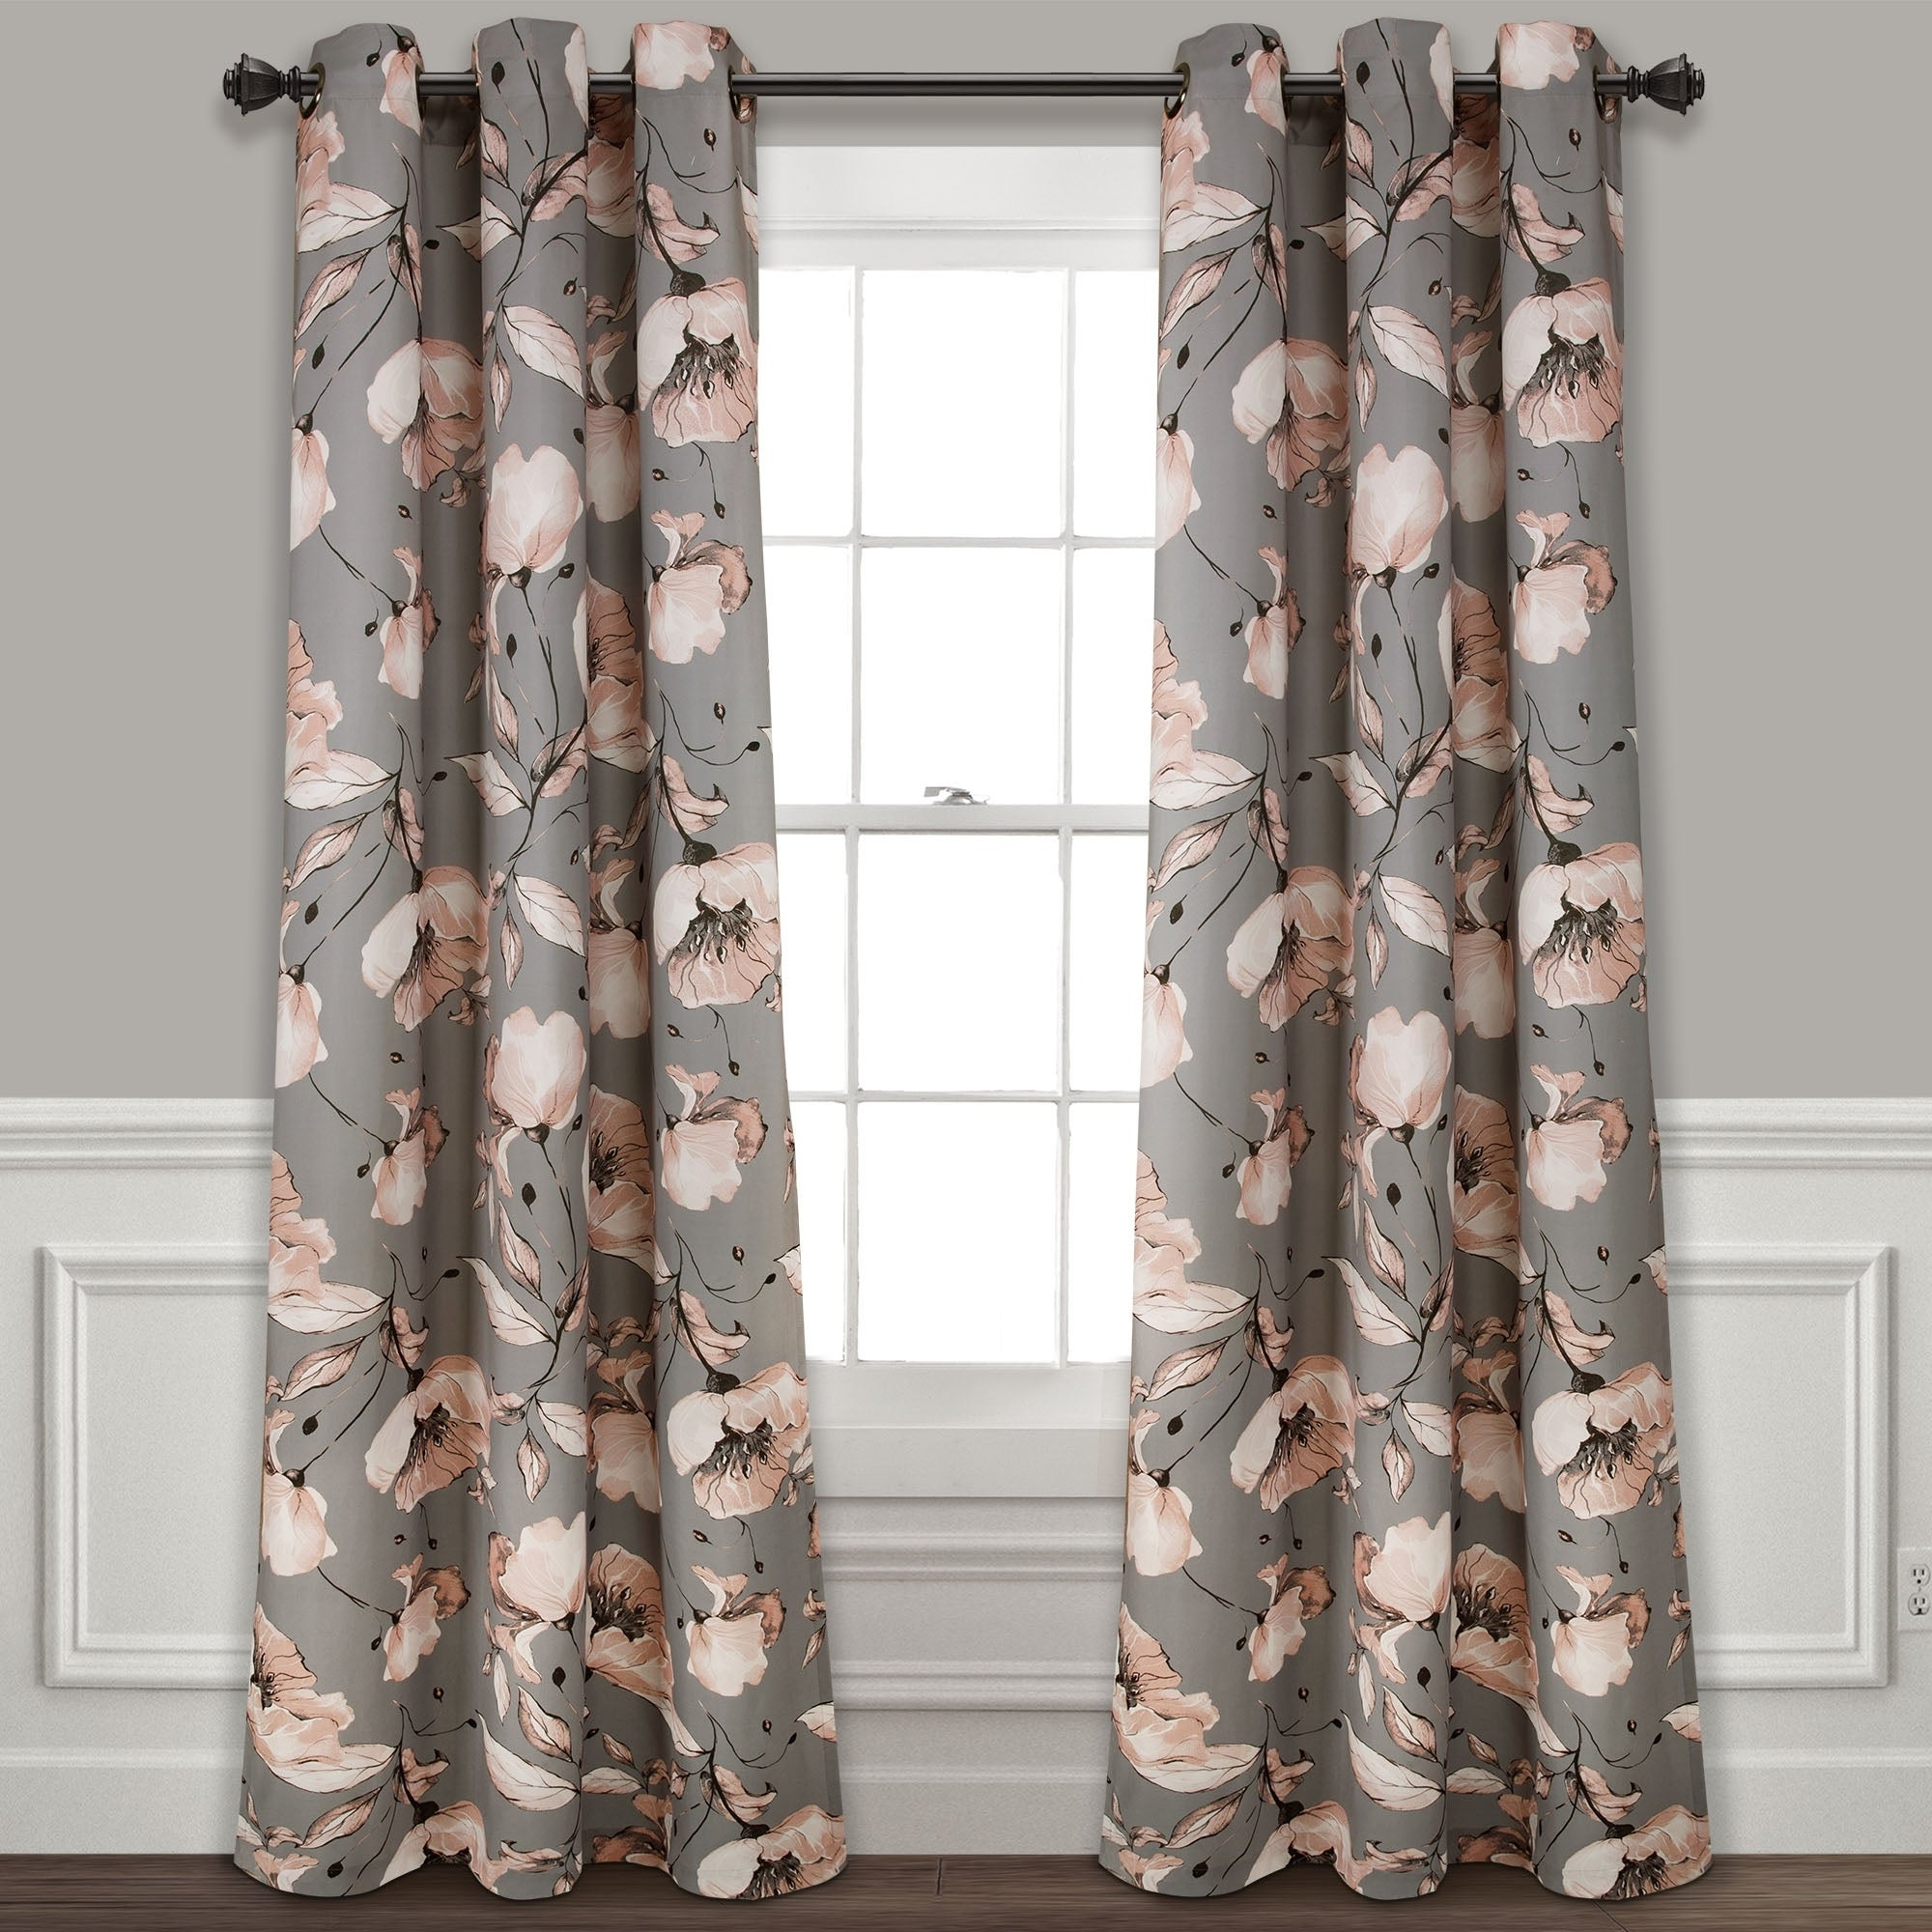 Well Known Silver Orchid Lane Blackout Window Curtain Panel Pair Pertaining To Gray Barn Dogwood Floral Curtain Panel Pairs (View 10 of 20)